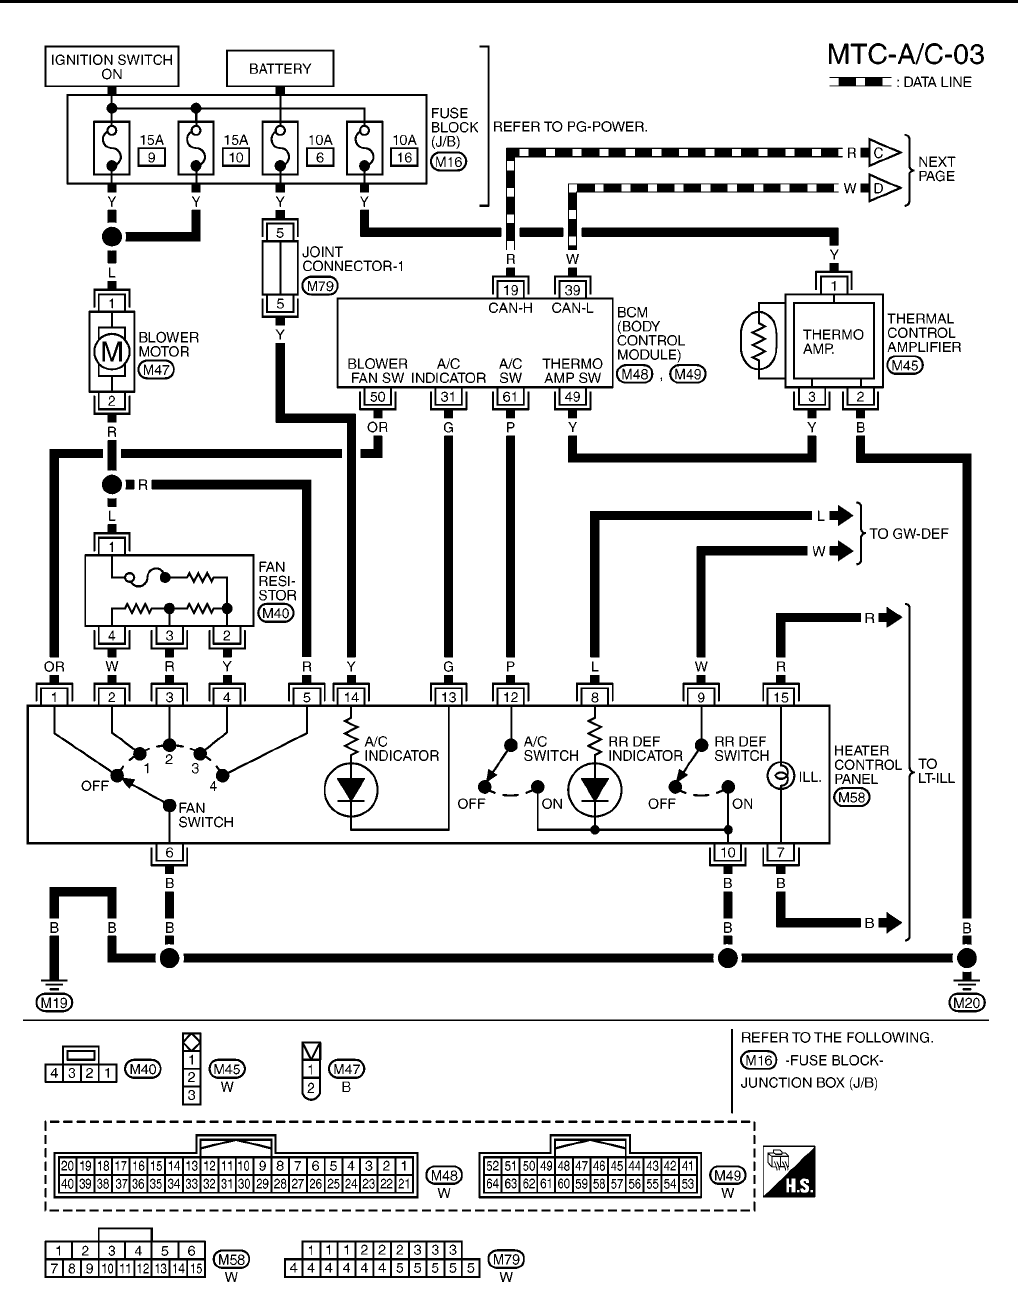 nissan micra wiring diagrams 2003 2005 24 pdf rh manuals co nissan micra electrical diagram nissan micra wiring diagram pdf